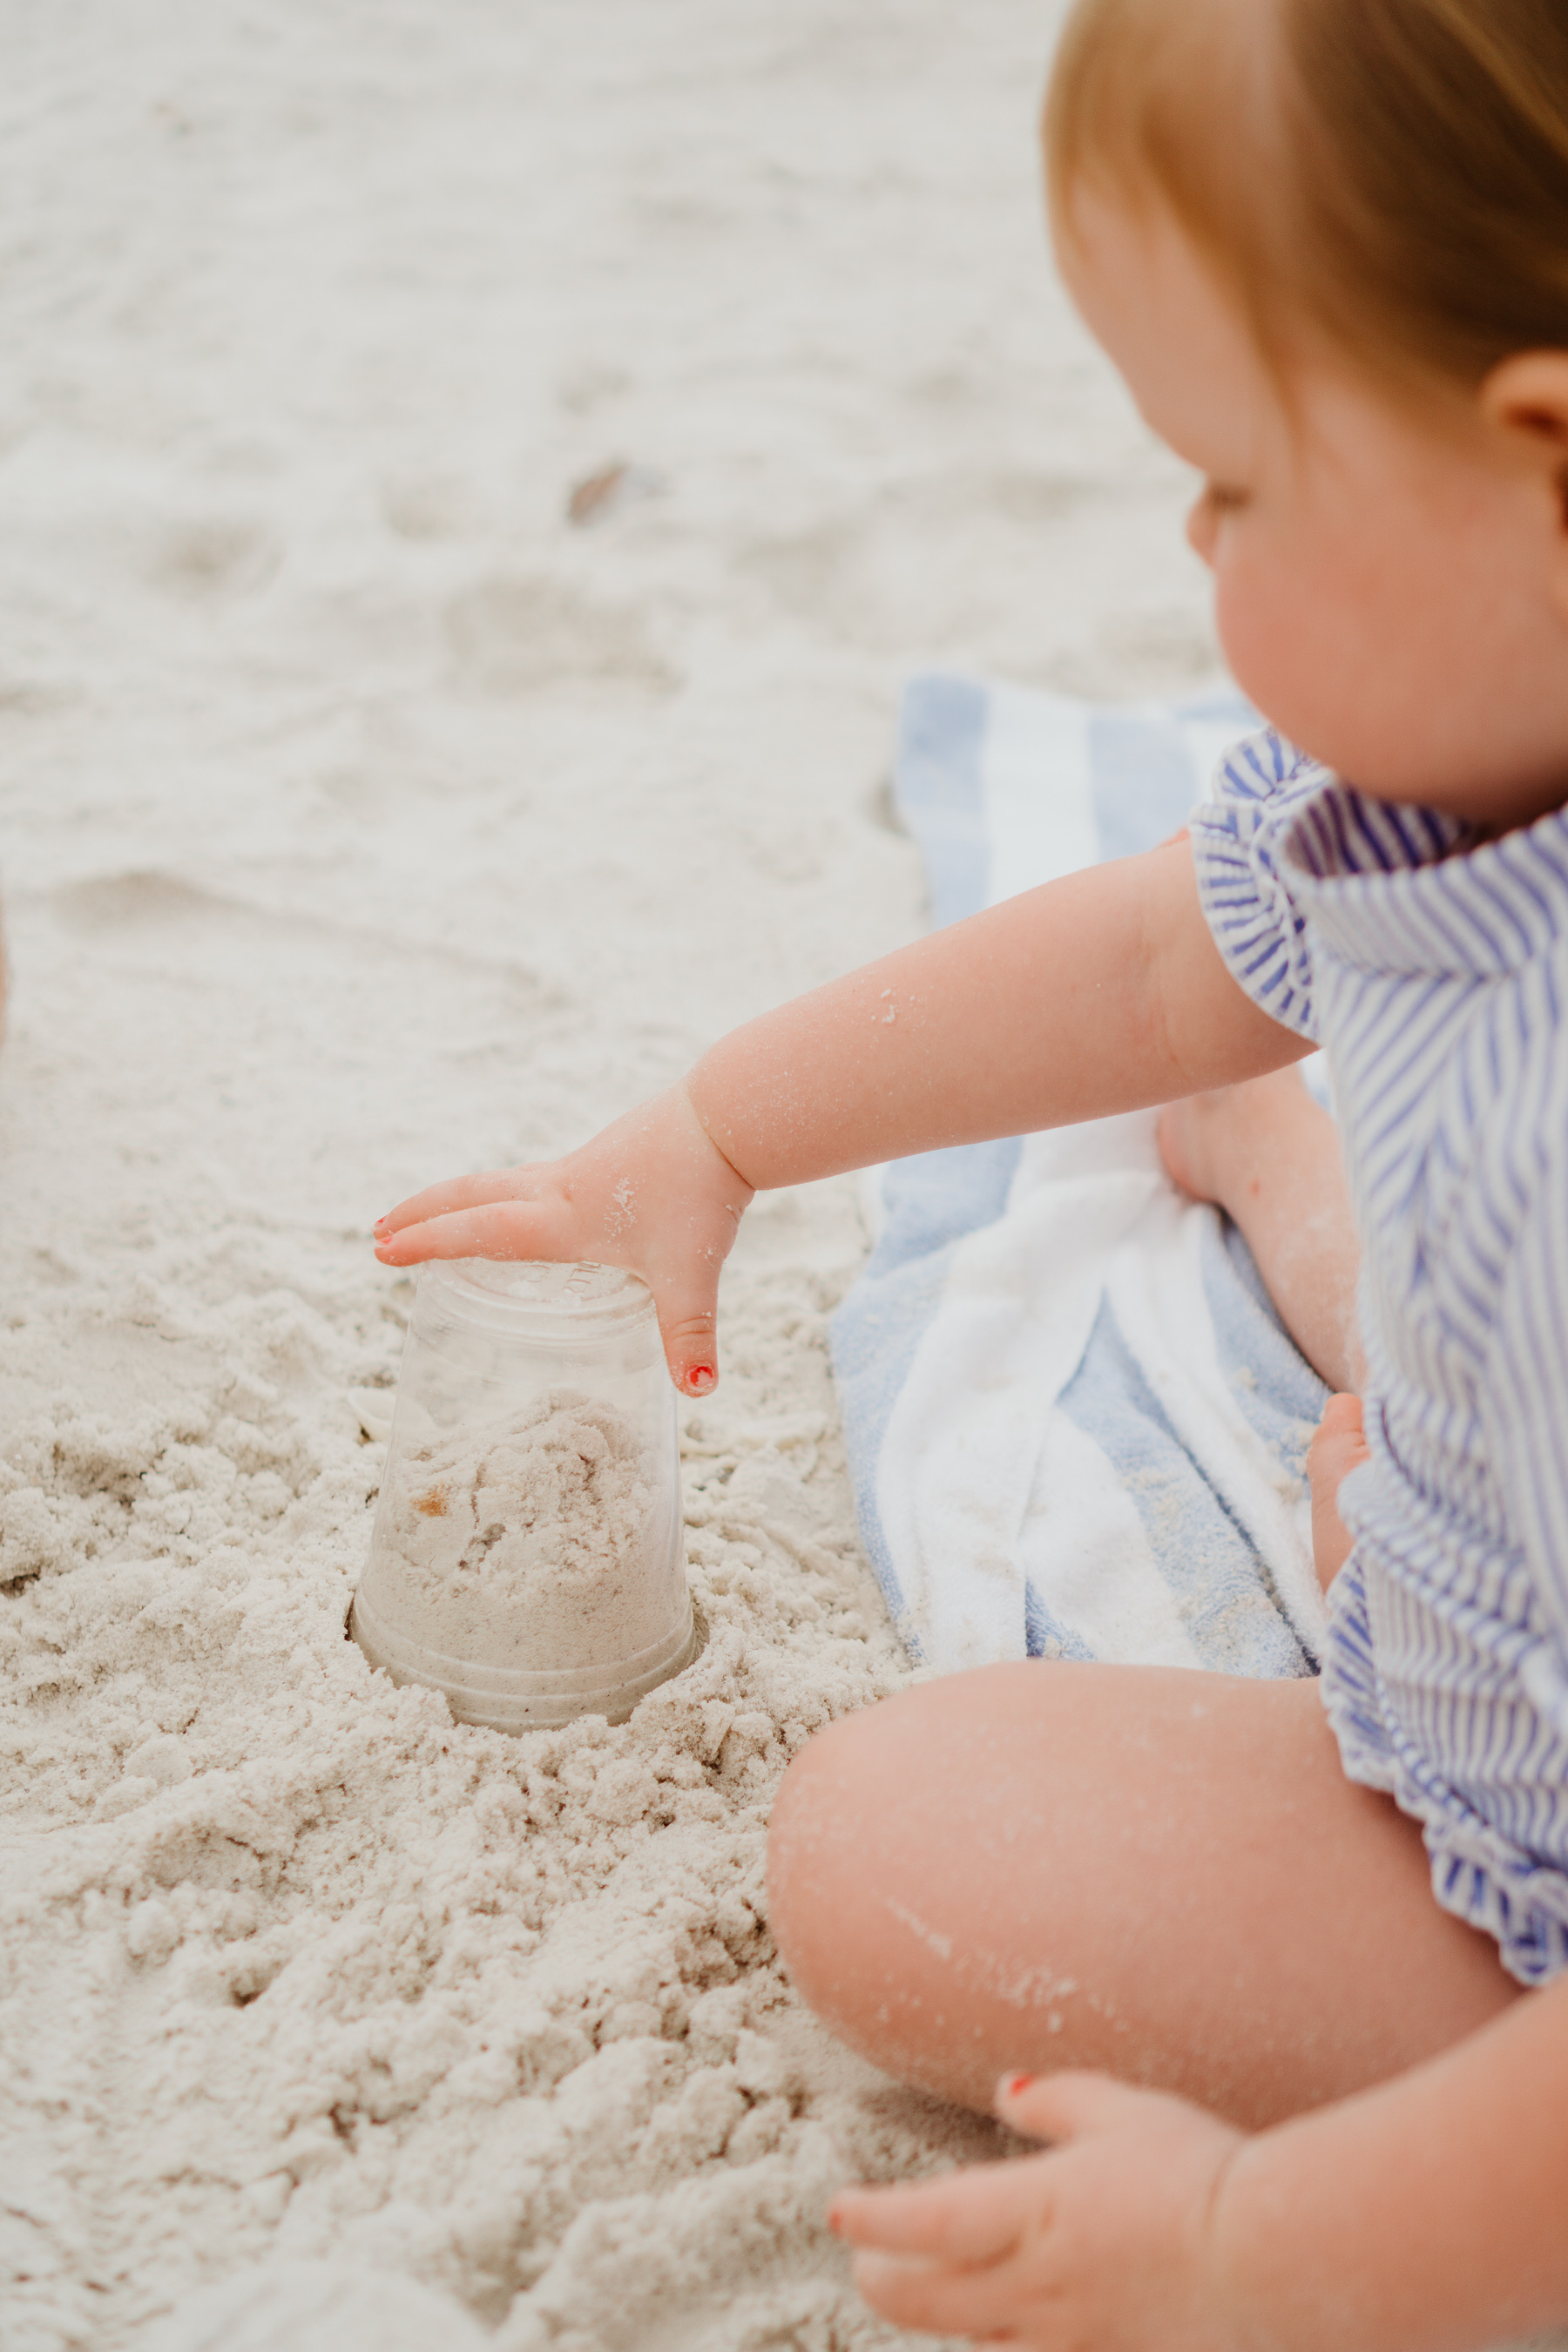 Emma playing with sand